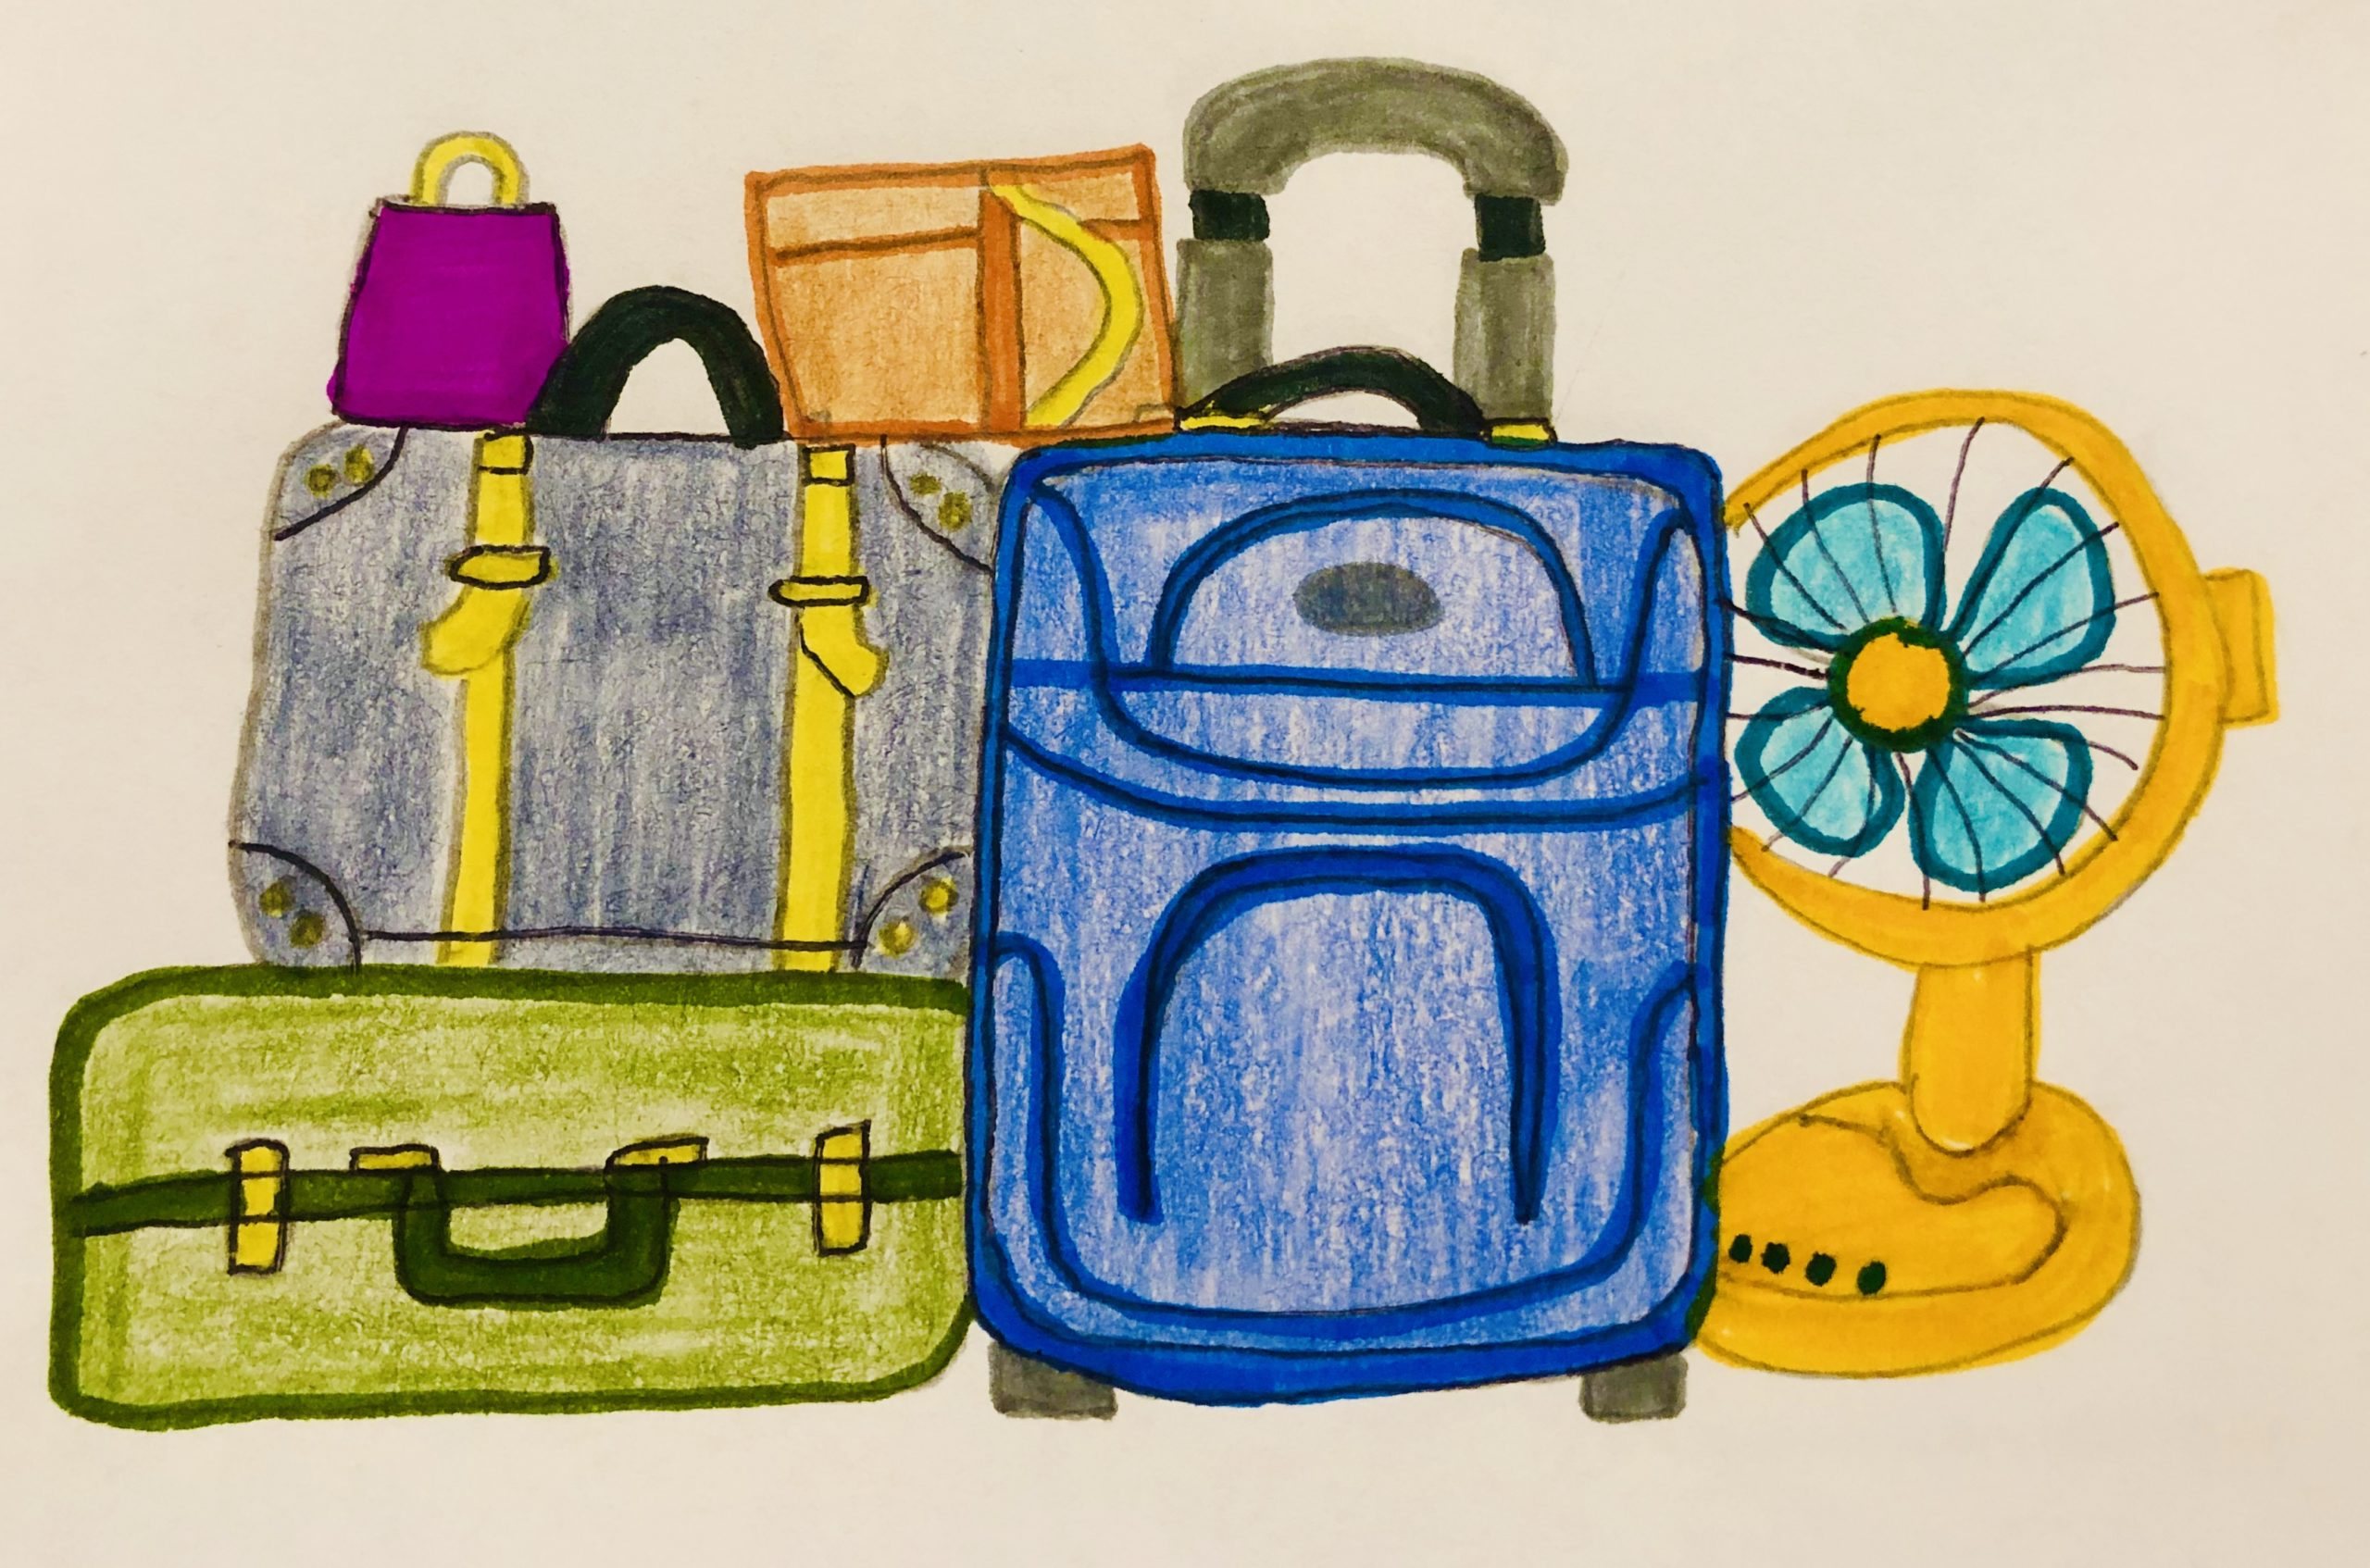 5 pieces of luggage and a fan for this story for kids.